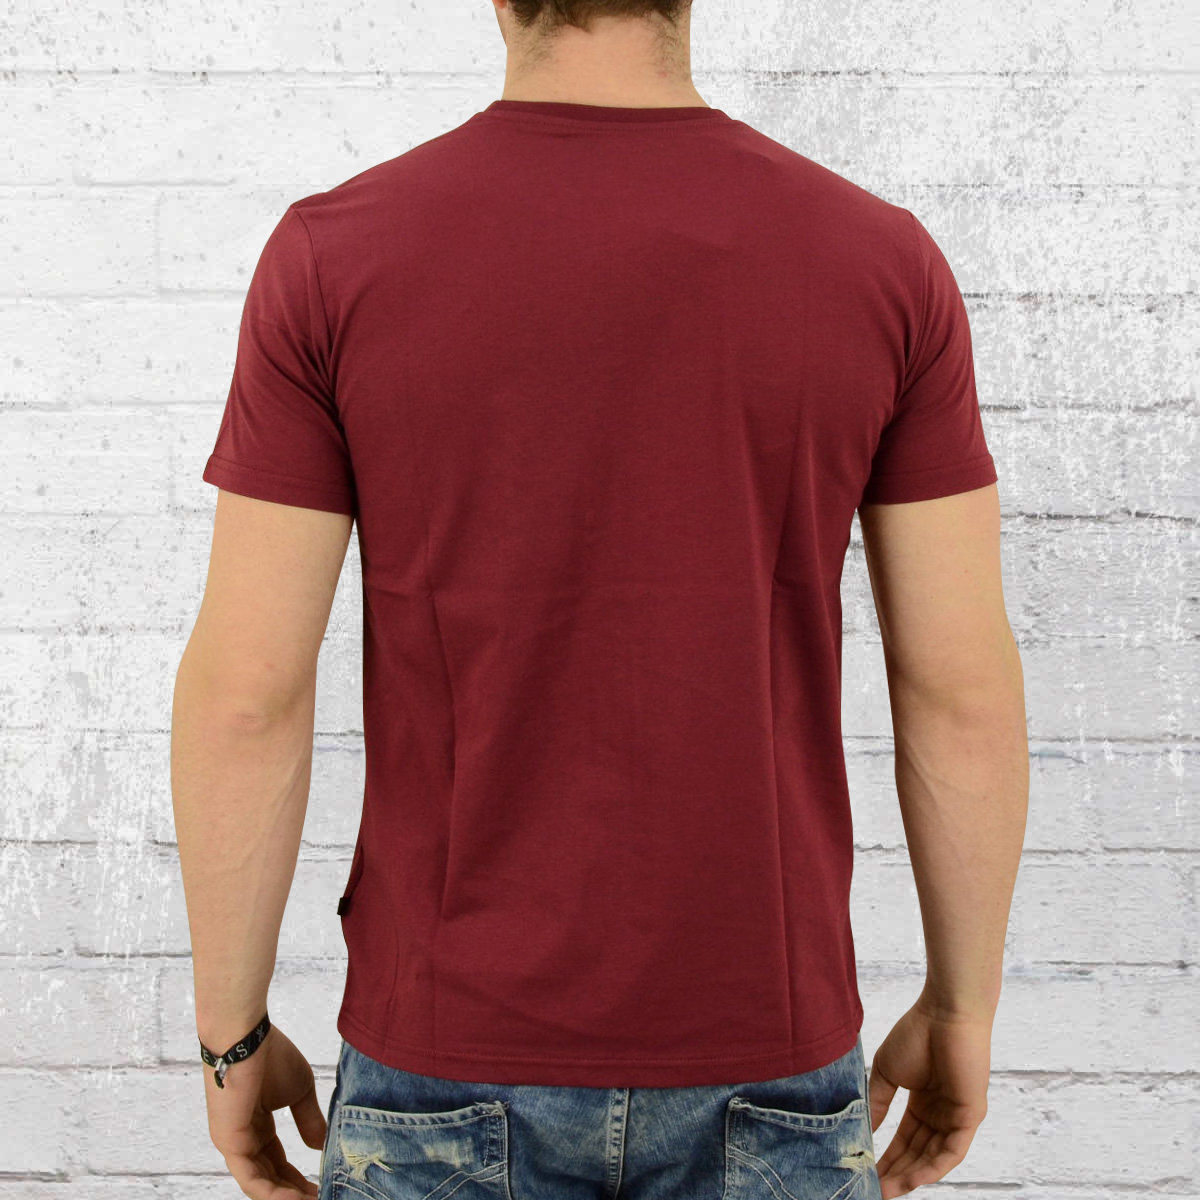 0123c9bf678a Order now   Alpha Industries Male T-Shirt Basic T burgundy